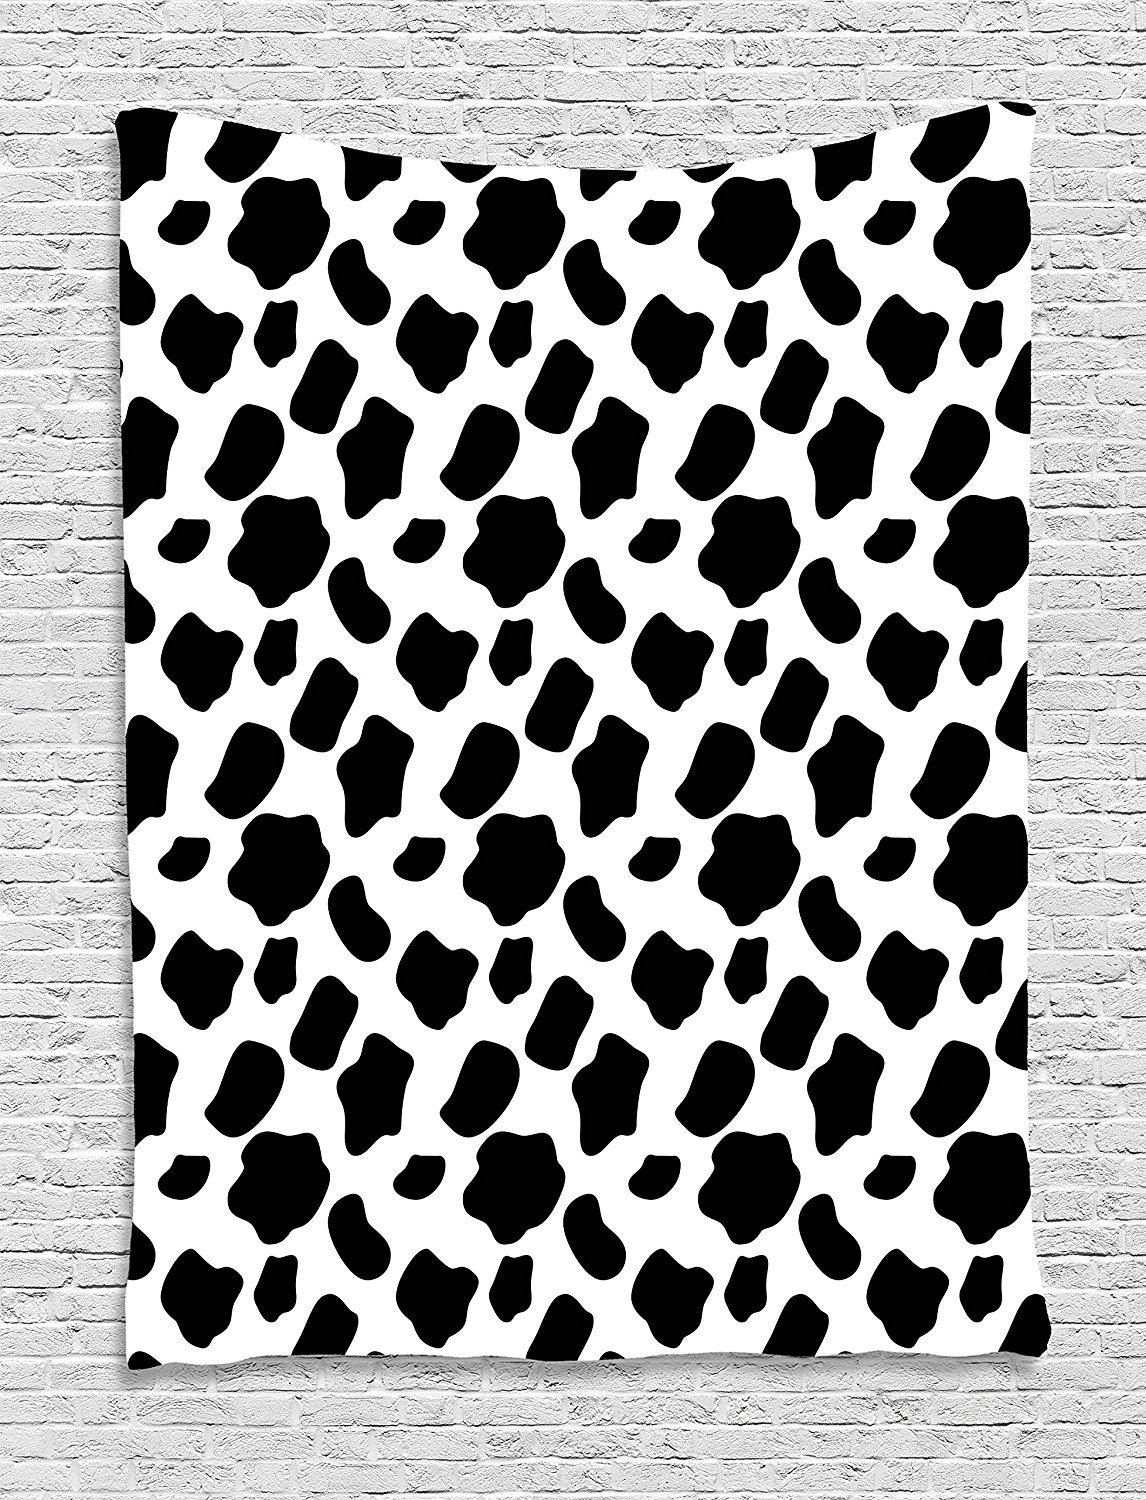 Cow Print Tapestry, Cattle Skin Pattern with Scattered Spots Animal Hide Plain and Pasture Print, Wall Hanging for Bedroom Living Room Dorm, 60 W X 80 L Inches, White Black